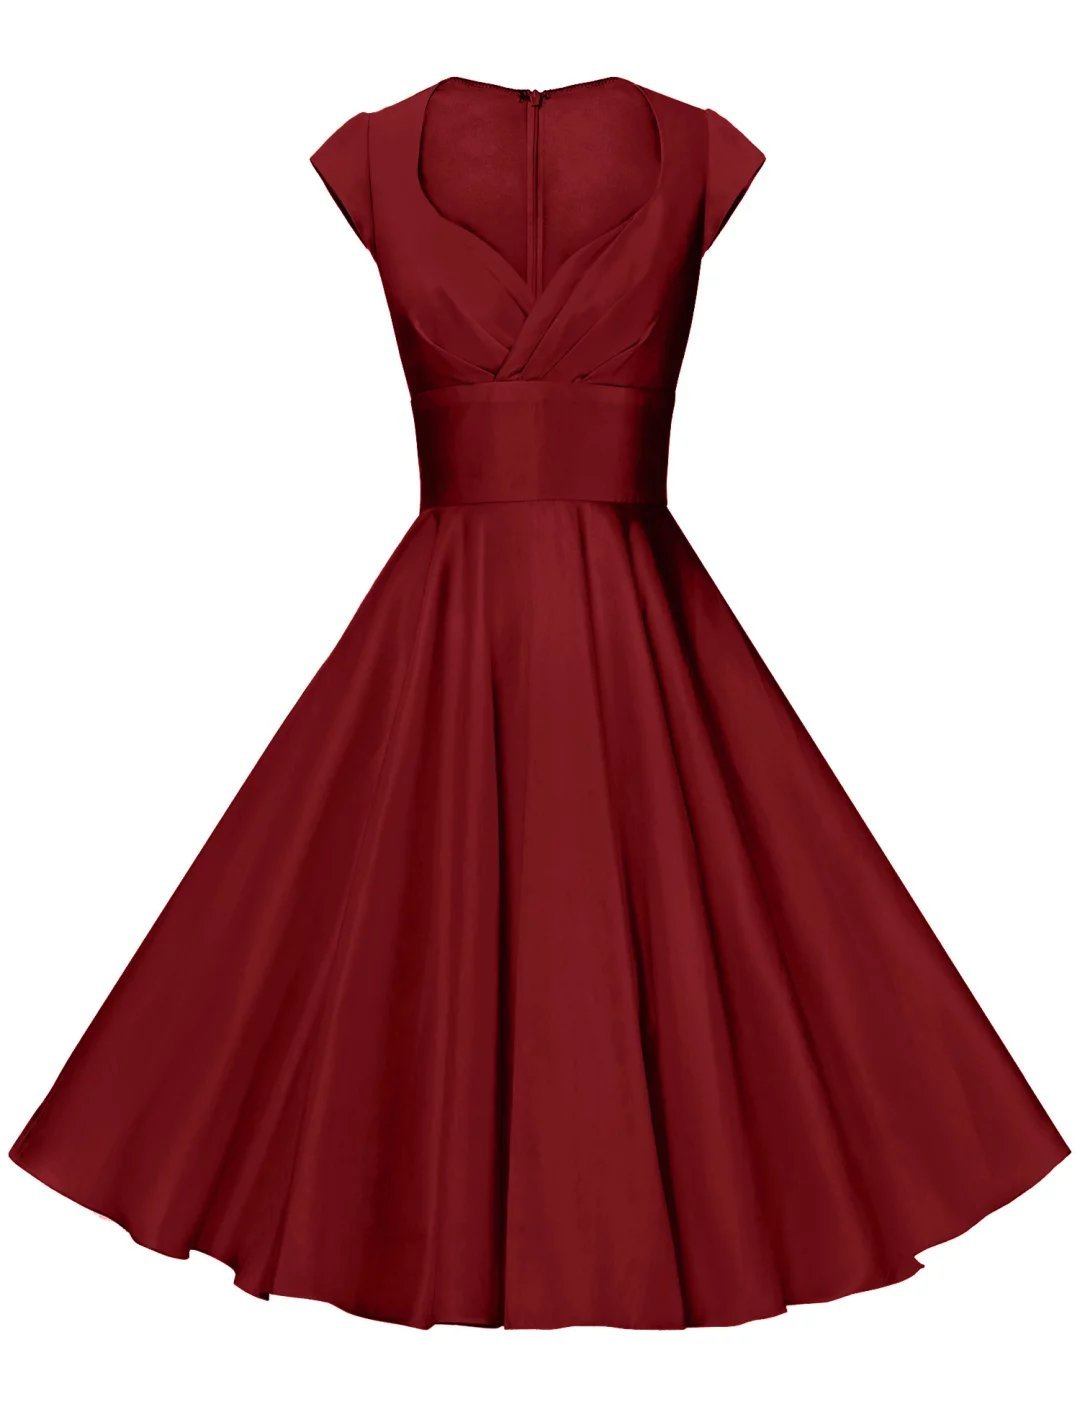 Available at Amazon: GownTown Women's Dresses Party Dresses 1950s Vintage Dresses Swing Stretchy Dresses